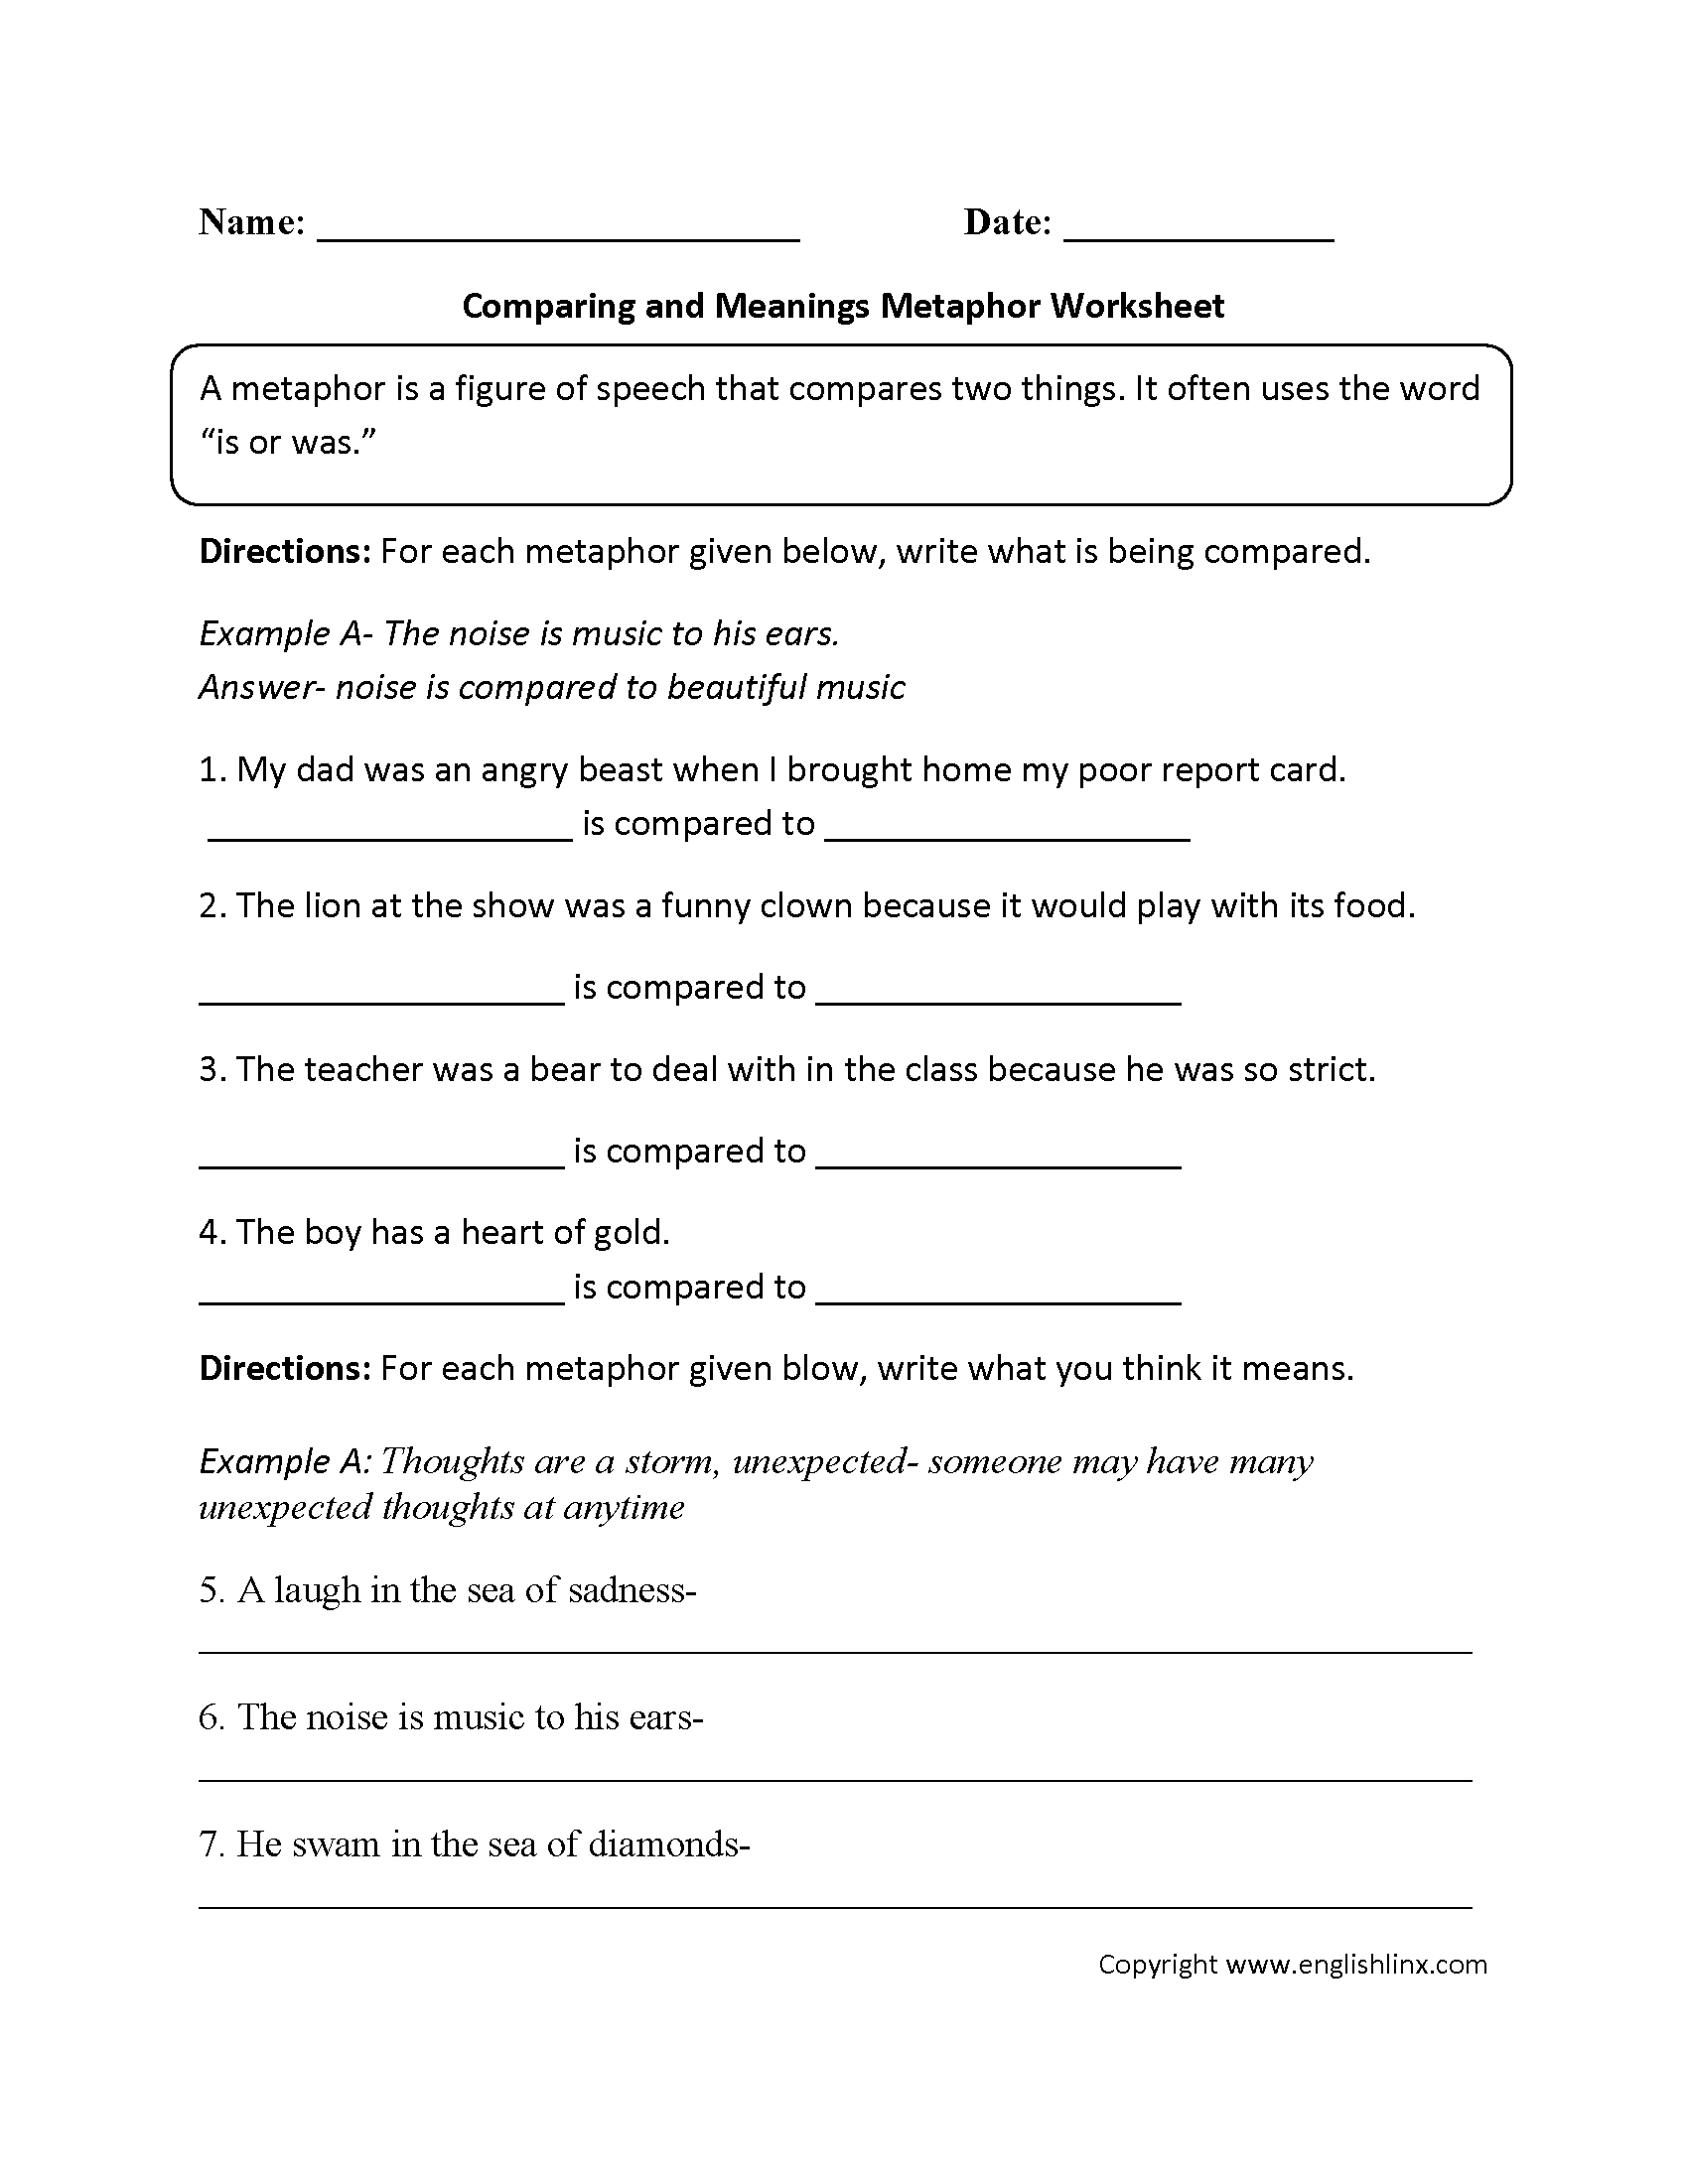 Worksheets Metaphor And Simile Worksheet englishlinx com metaphors worksheets metaphor worksheet